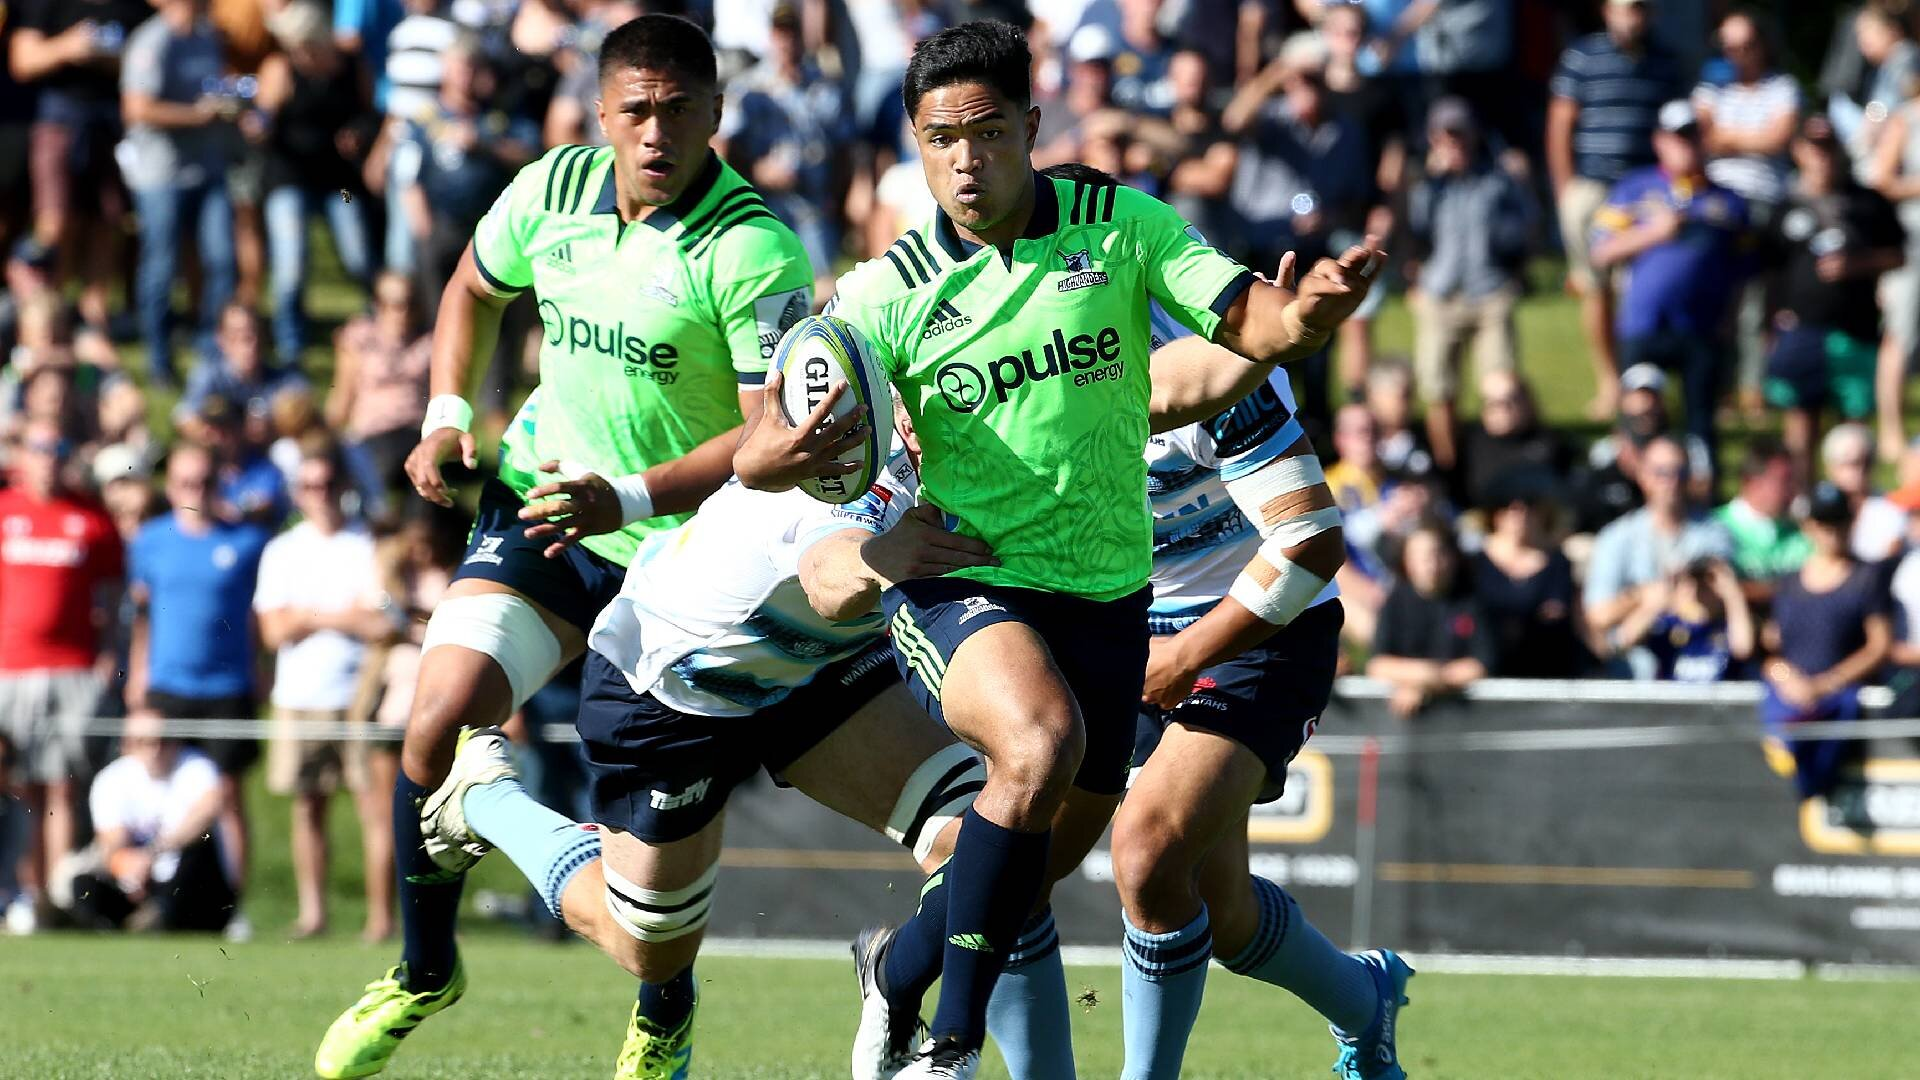 'Exciting team, isn't it?' - Highlanders rely on youth as Rebels boosted by returning Wallabies